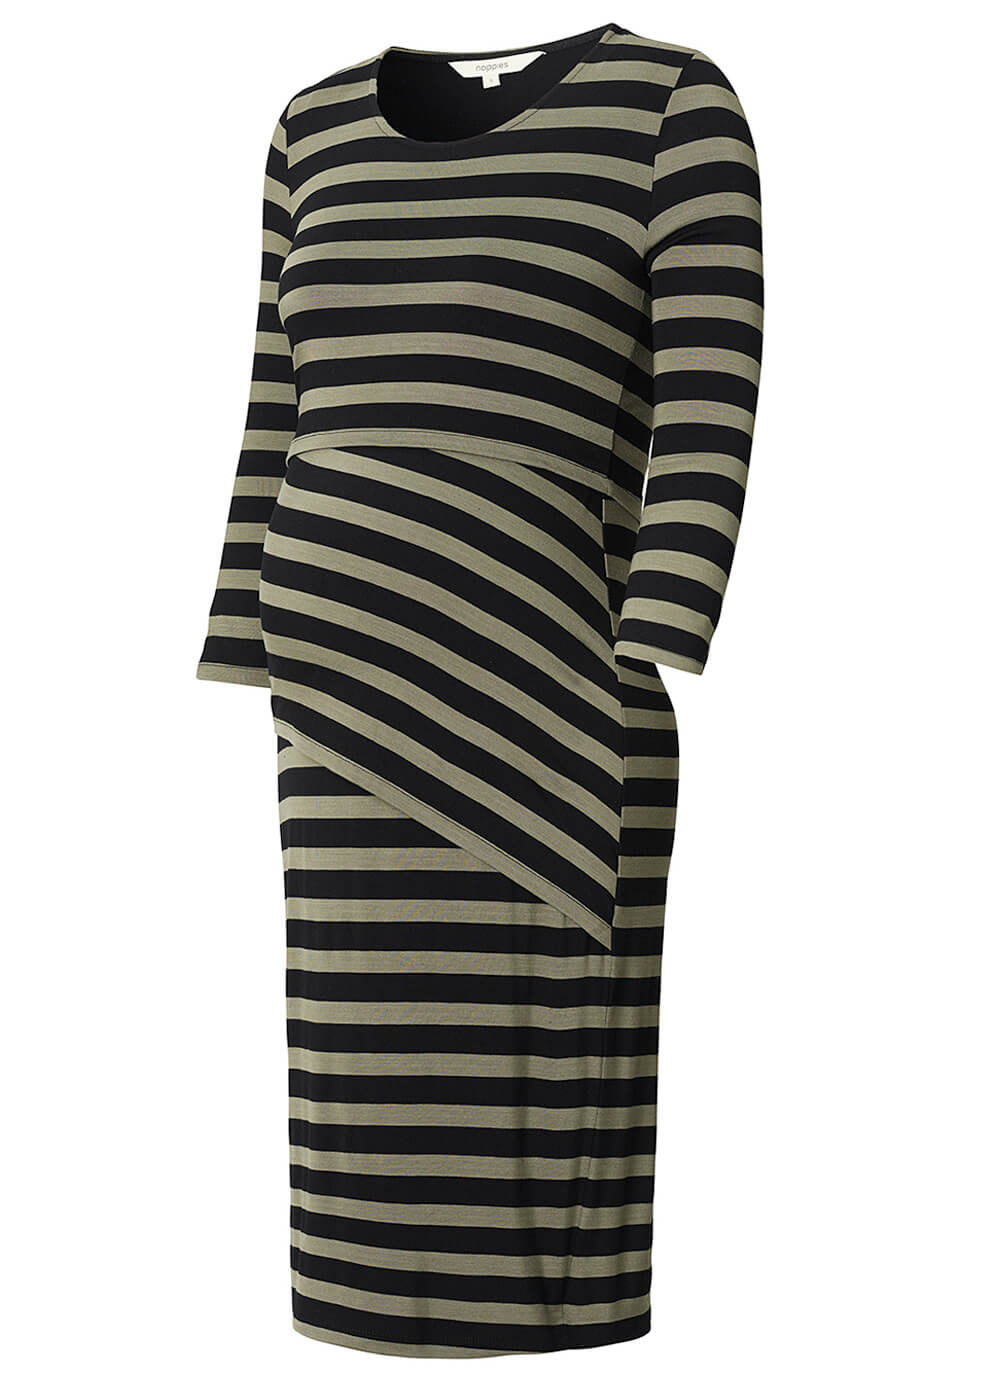 Heidi Maternity Nursing Dress in Army Stripes by Noppies